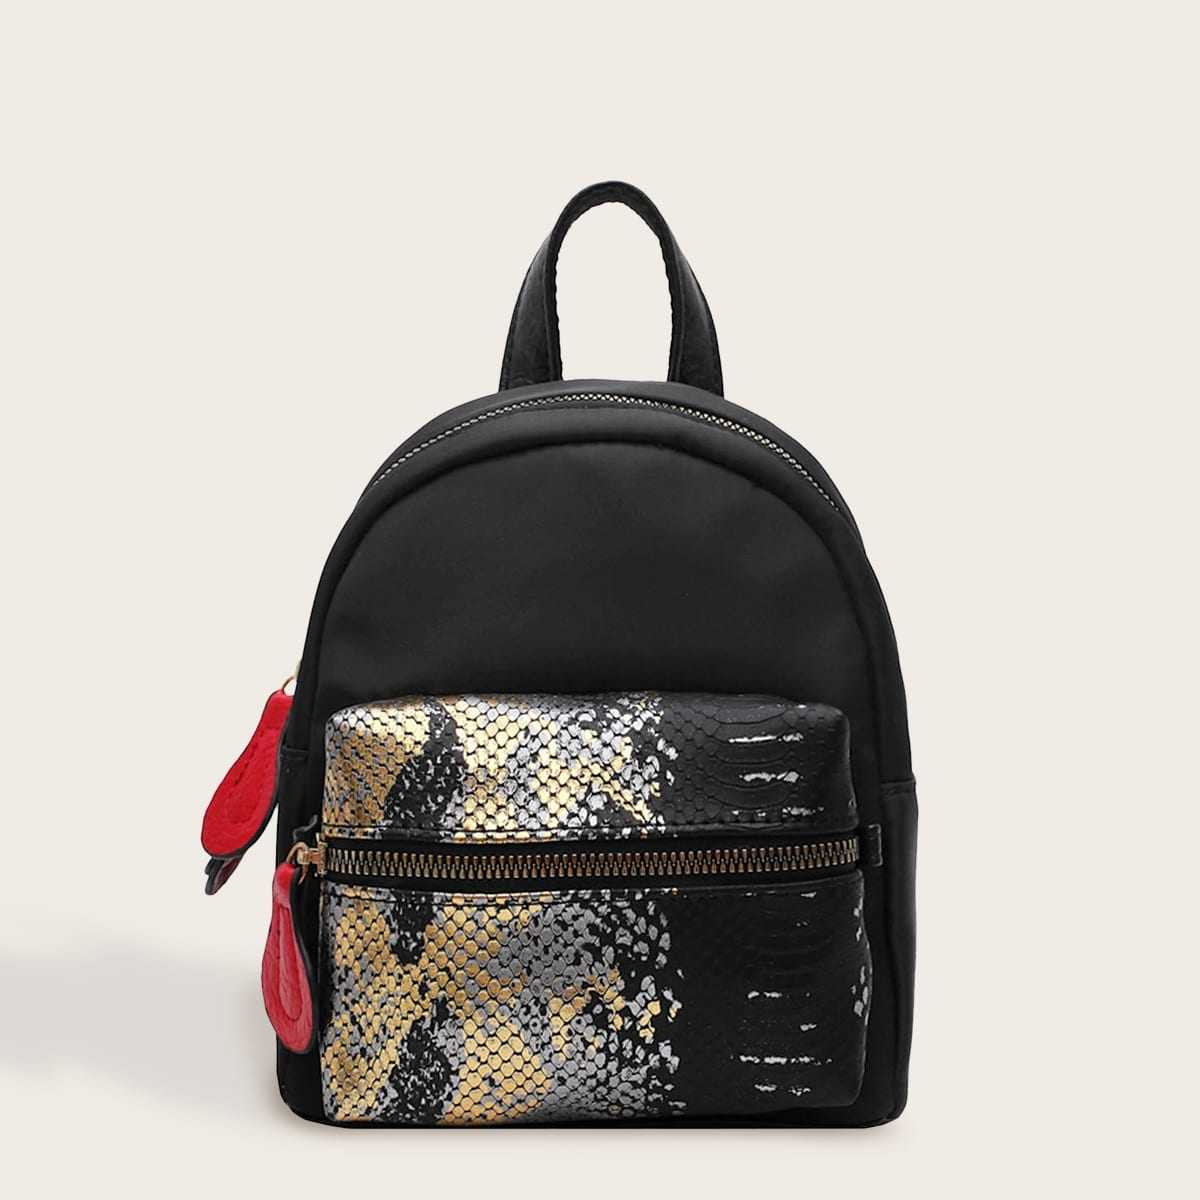 Snakeskin Print Pocket Front Backpack in Multicolor by ROMWE on GOOFASH